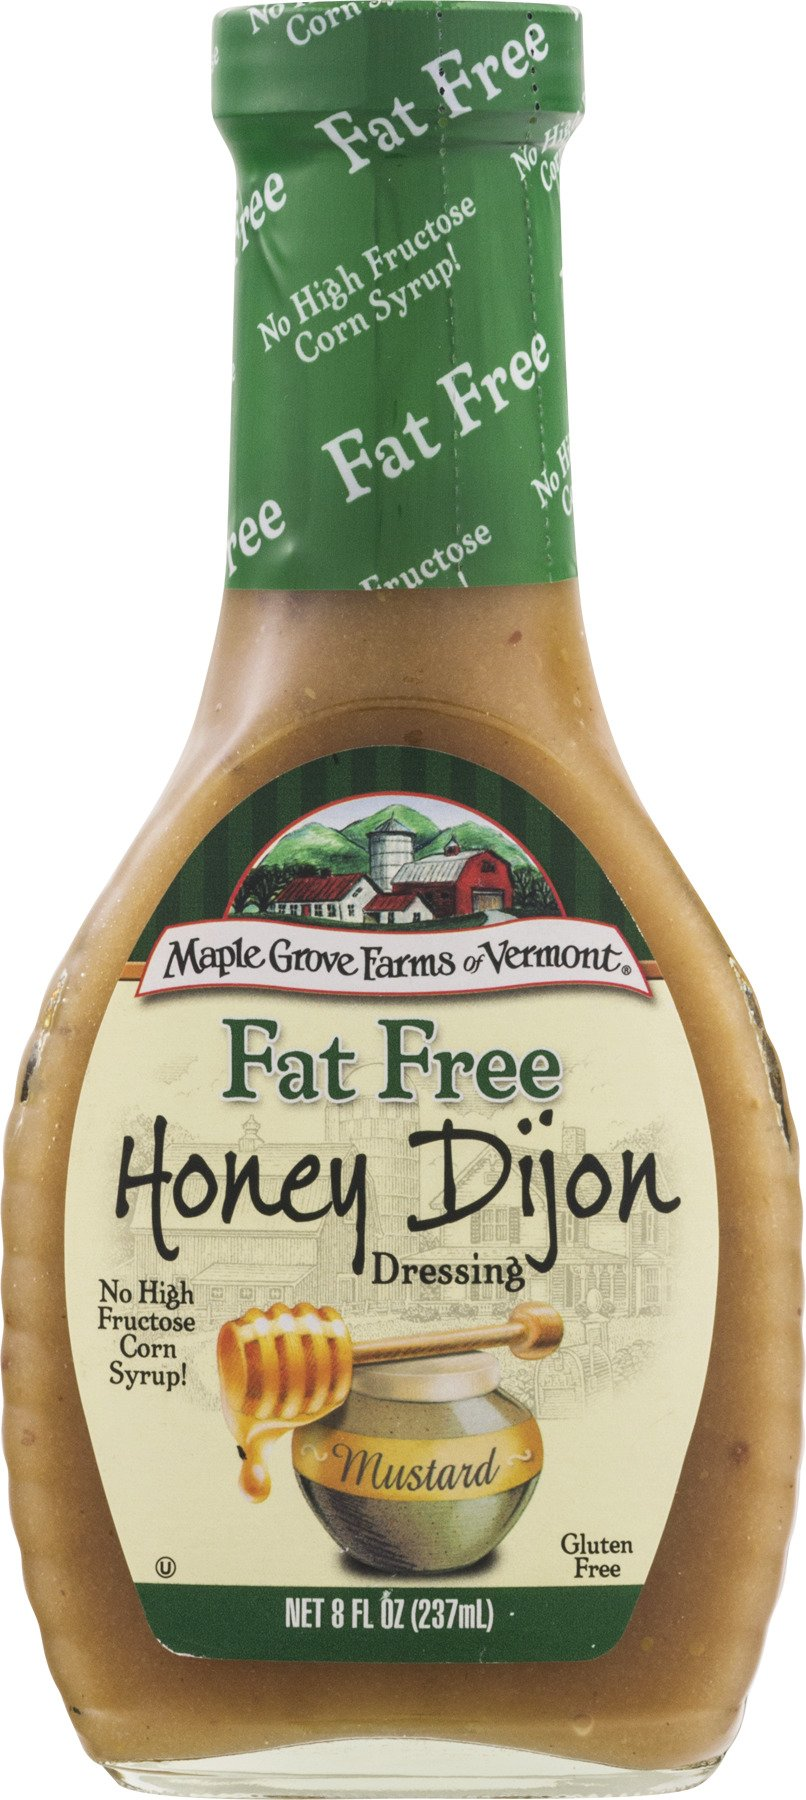 Maple Grove Farms Fat Free Honey Dijon Dressing, 8 oz